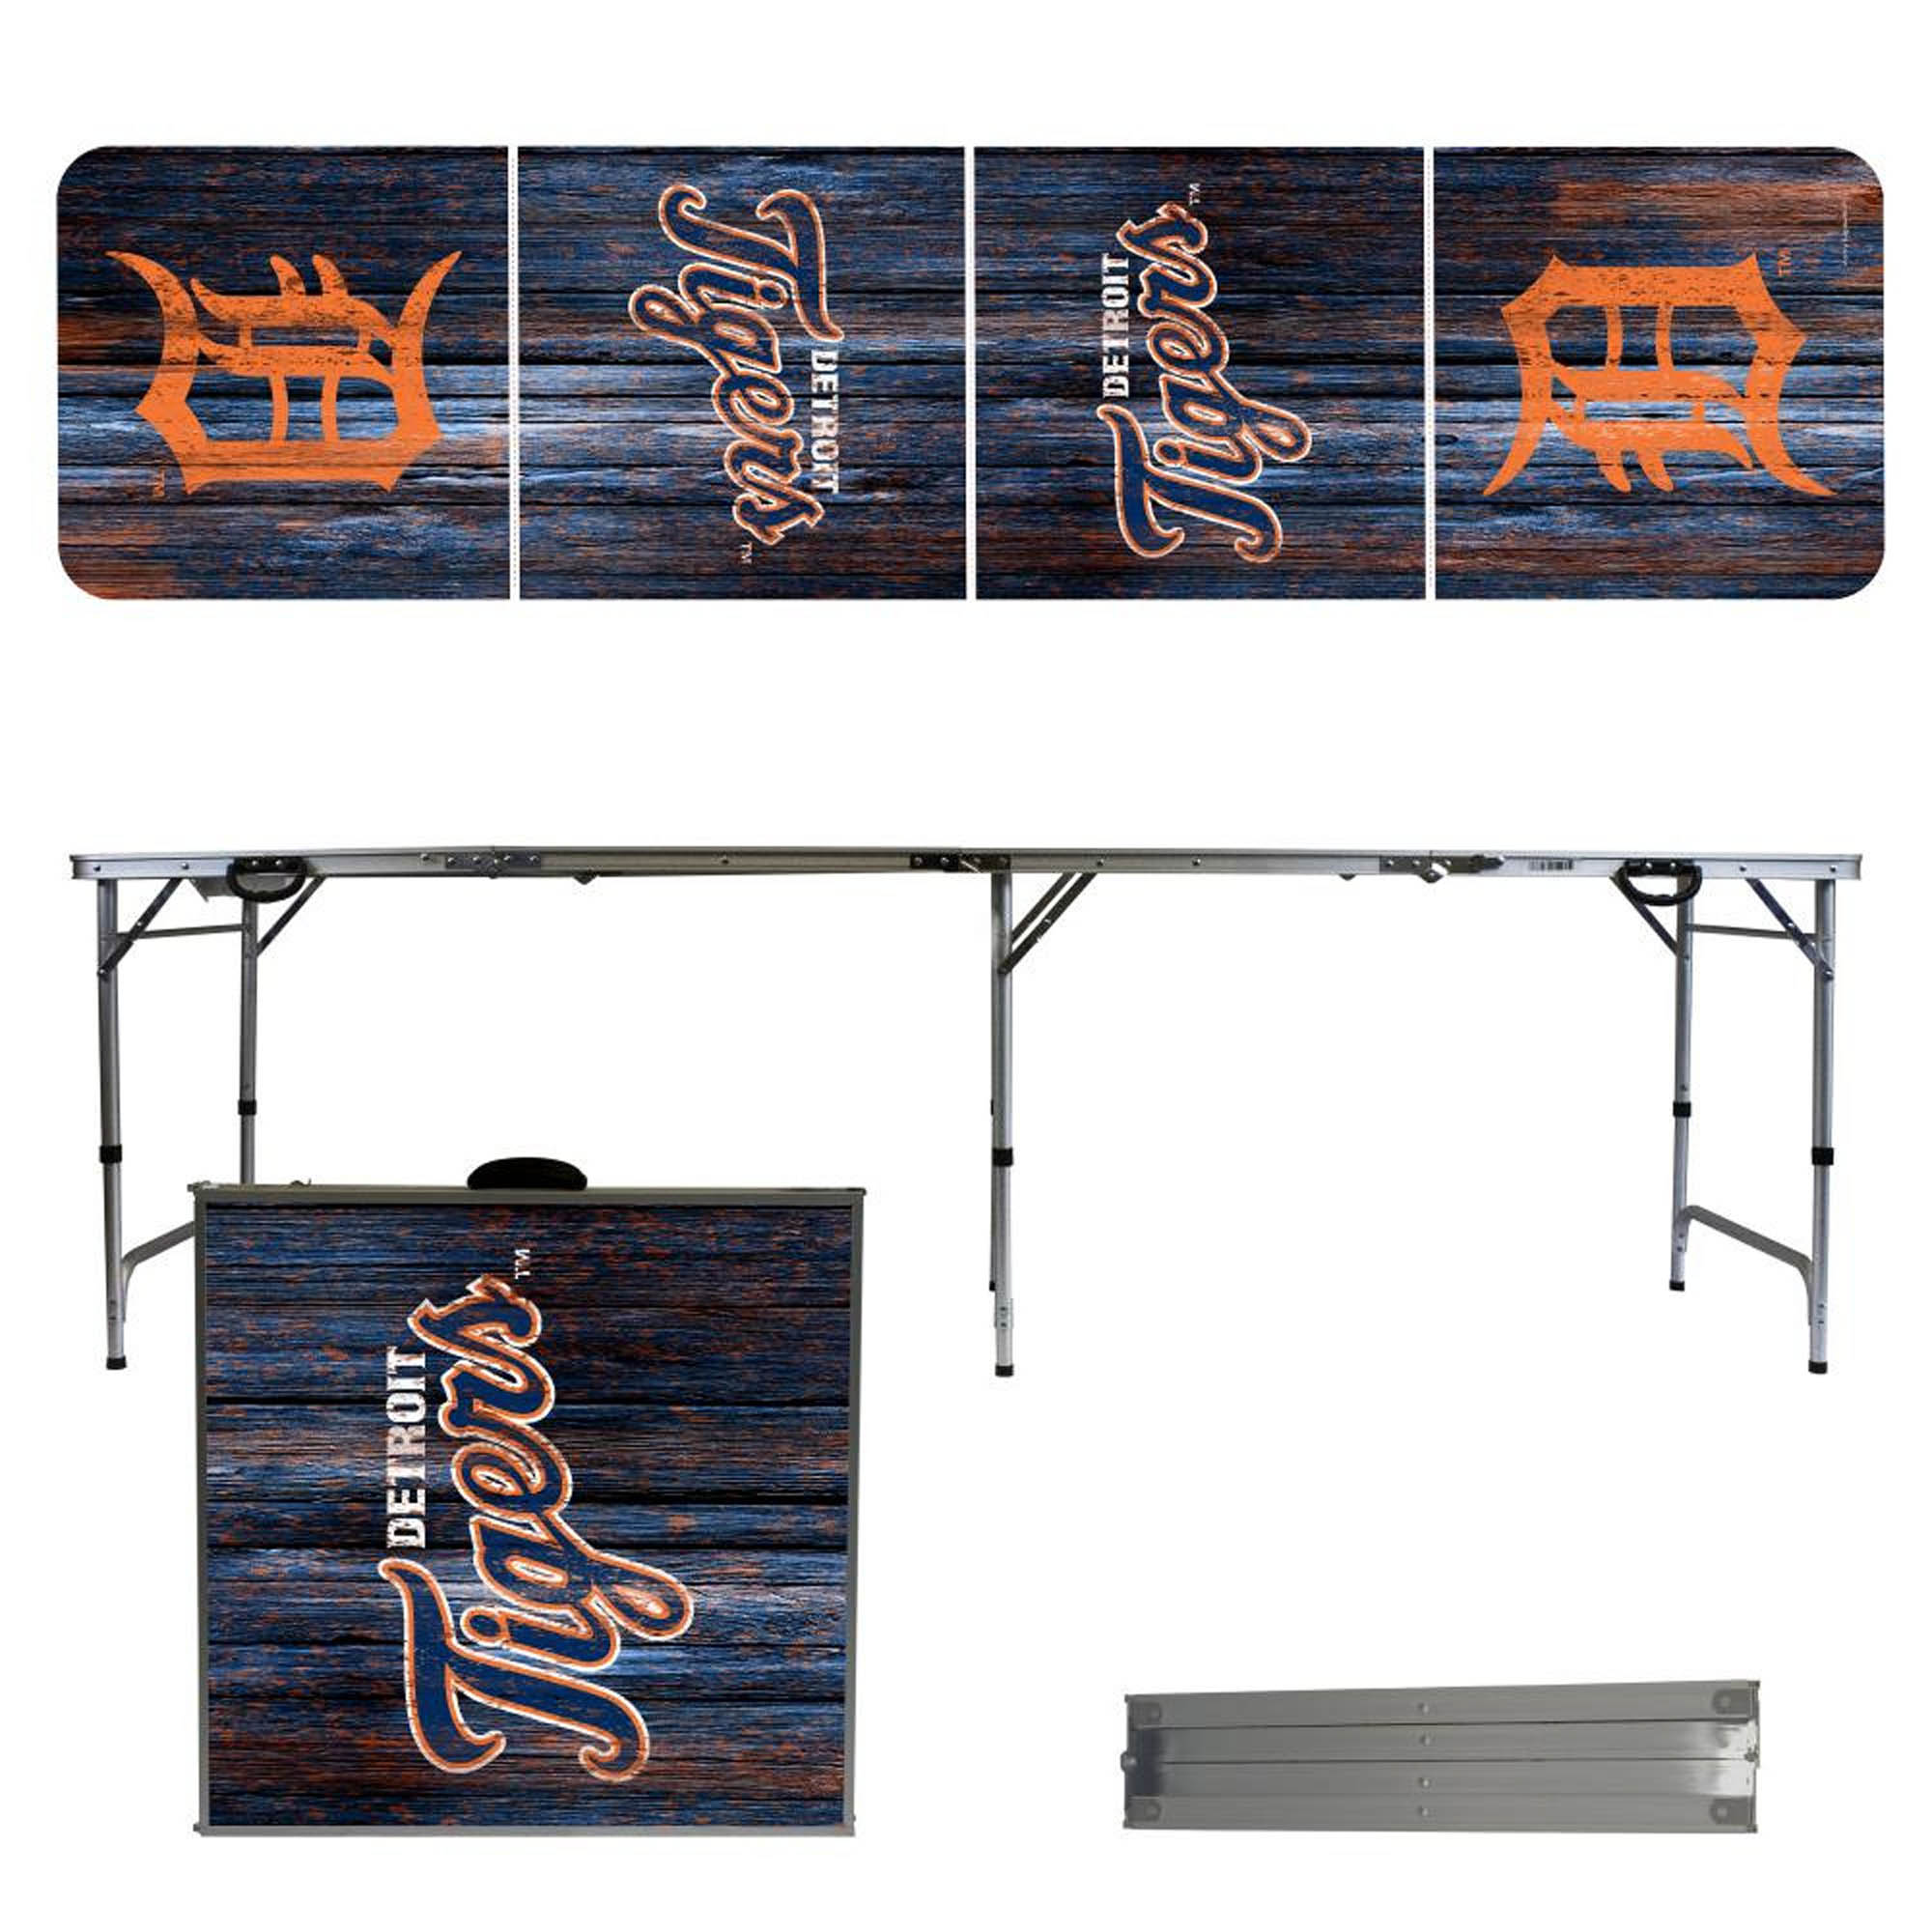 Detroit Tigers Weathered Design 8' Portable Folding Tailgate Table - No Size